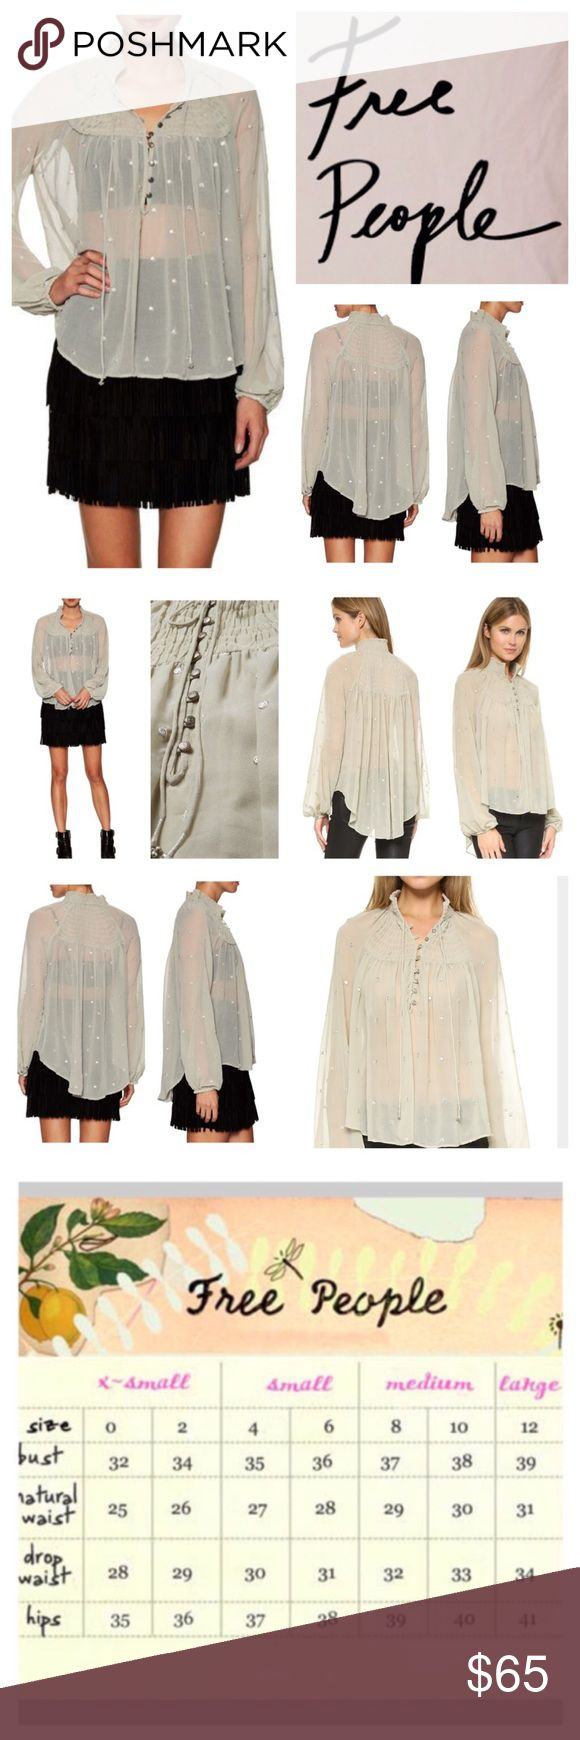 """Free People Ready To Run Blouse.  NWT. Free People Ready To Run Blouse, 100% polyester, washable, 18.5"""" armpit to armpit (37"""" all around), 19"""" arm inseam, 24"""" length, metallic embroidery and sequins form raised polka dots on this airy blouse, smocked elastic neckline is secured with beaded ties, and buttons secure the quarter placket, long sleeves and gathered elastic cuffs, semi-sheer, measurements are approx.  NO TRADES Free People Tops Blouses"""